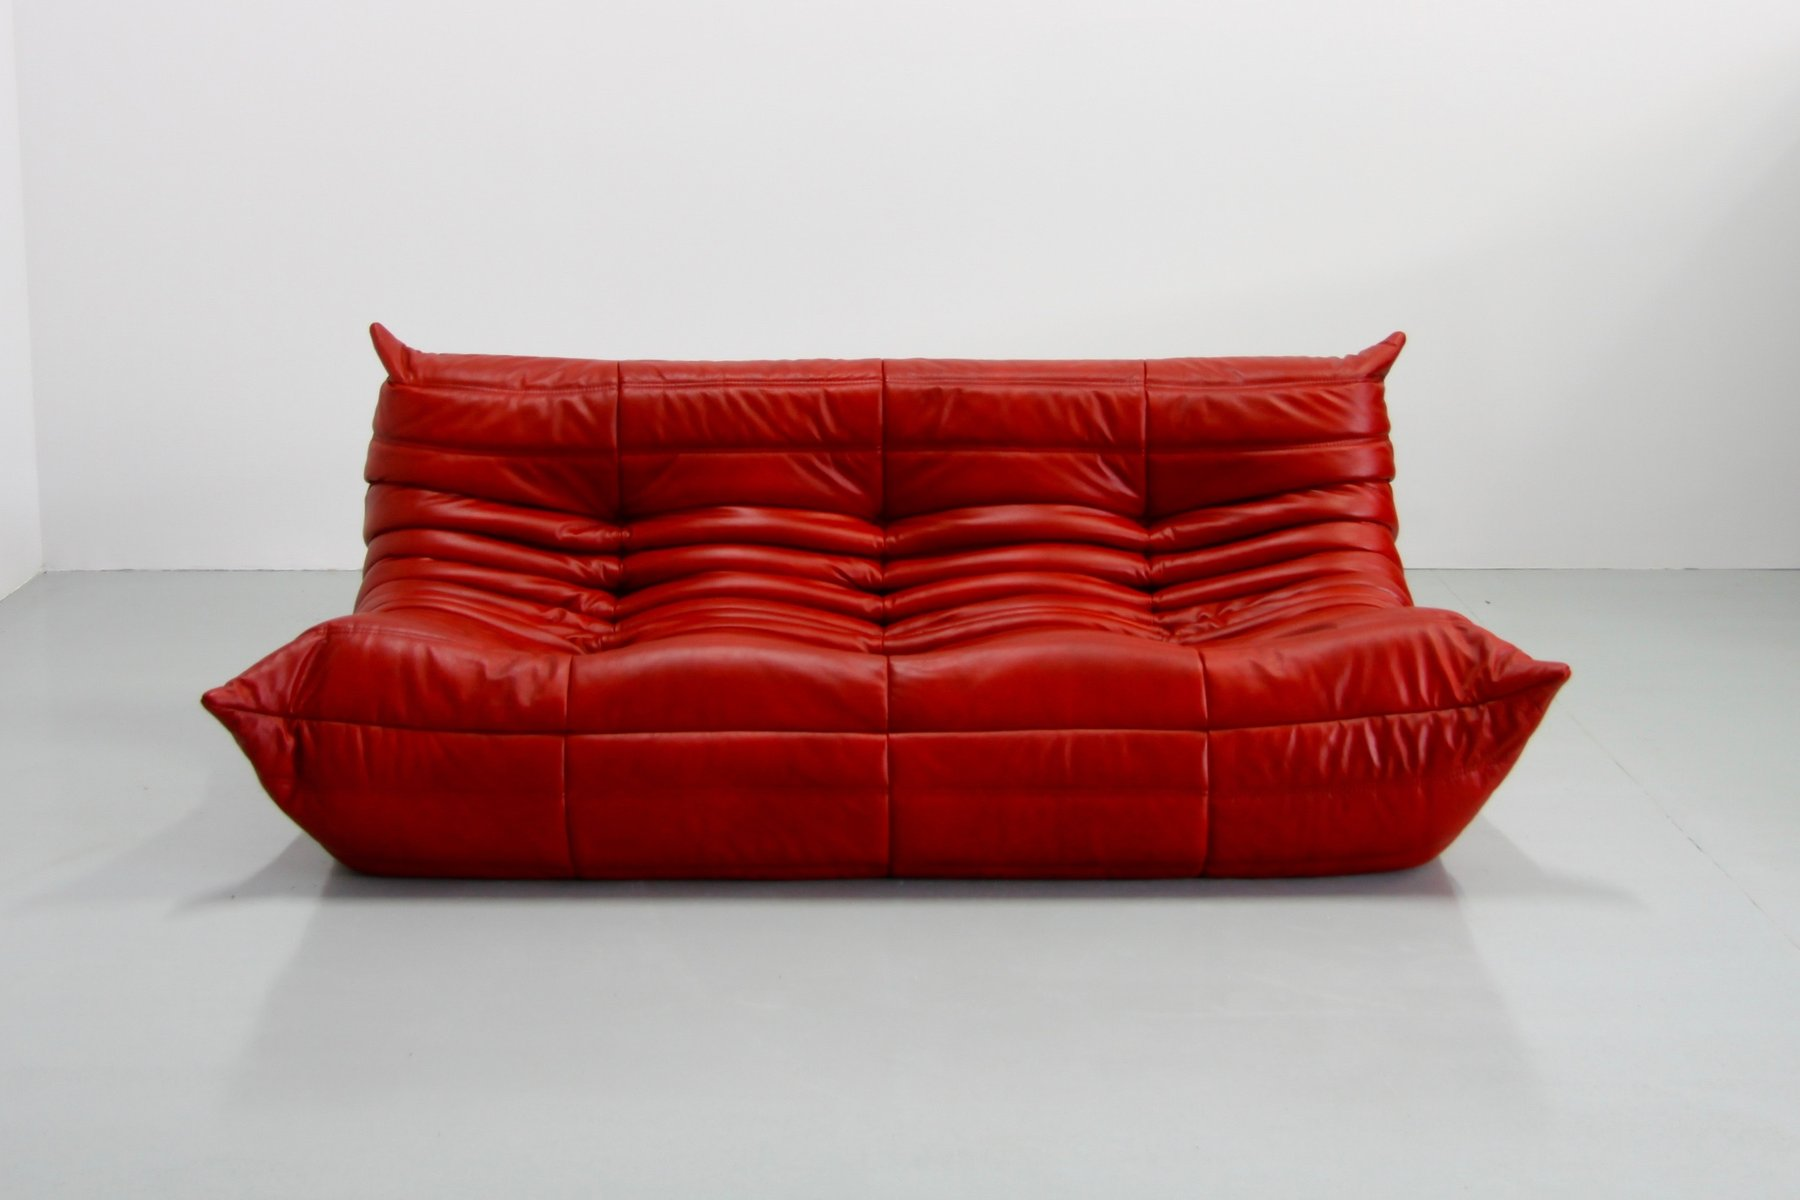 roset ligne sofa sofas ligne roset official site thesofa. Black Bedroom Furniture Sets. Home Design Ideas